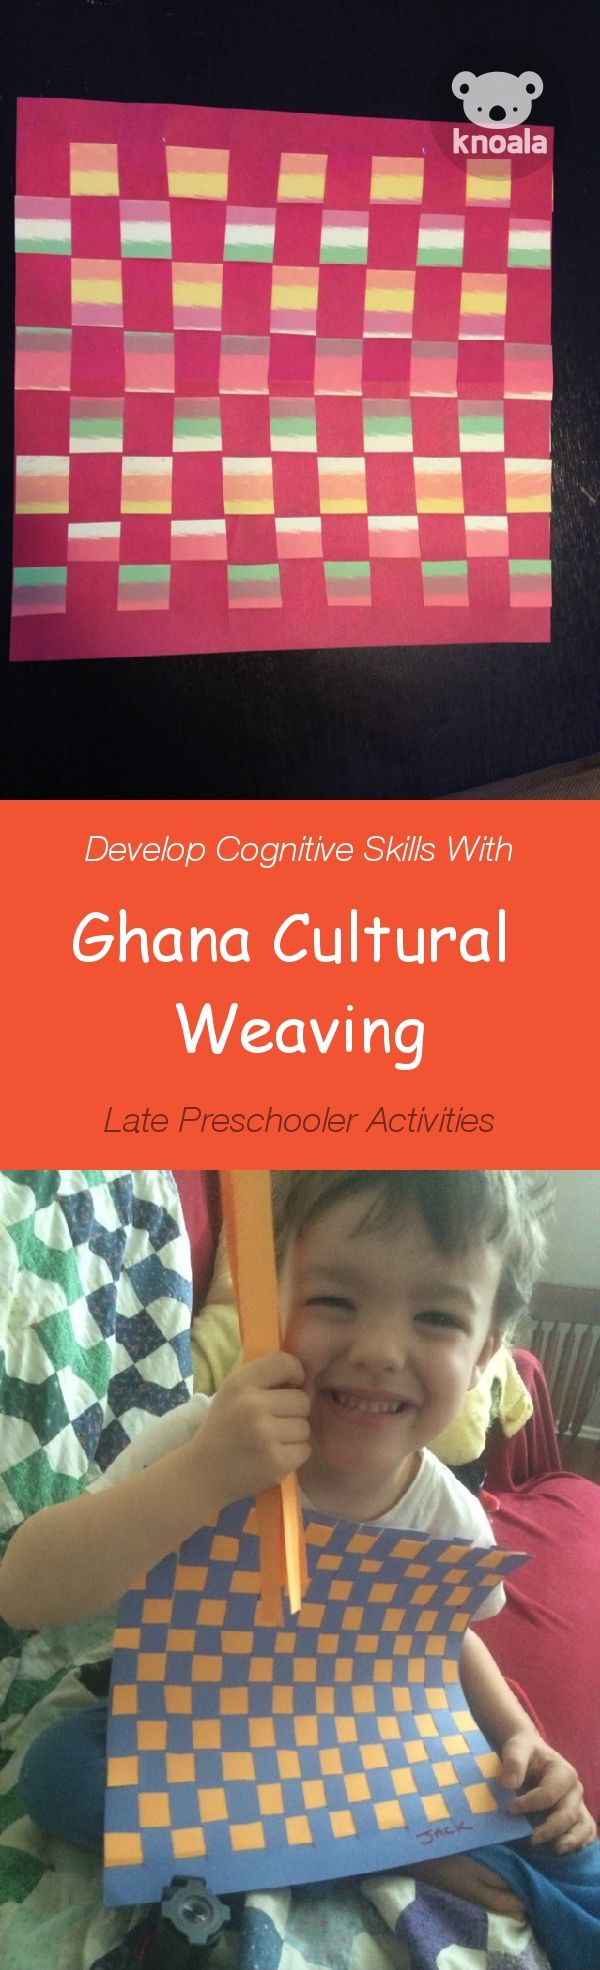 #Knoala Late Preschooler activity 'Ghana Cultural Weaving' helps little ones develop Cognitive and Motor skills. Click for simple instructions  1000s more fun, easy, no-prep activities for kids ages 0-5! #activities #DIY